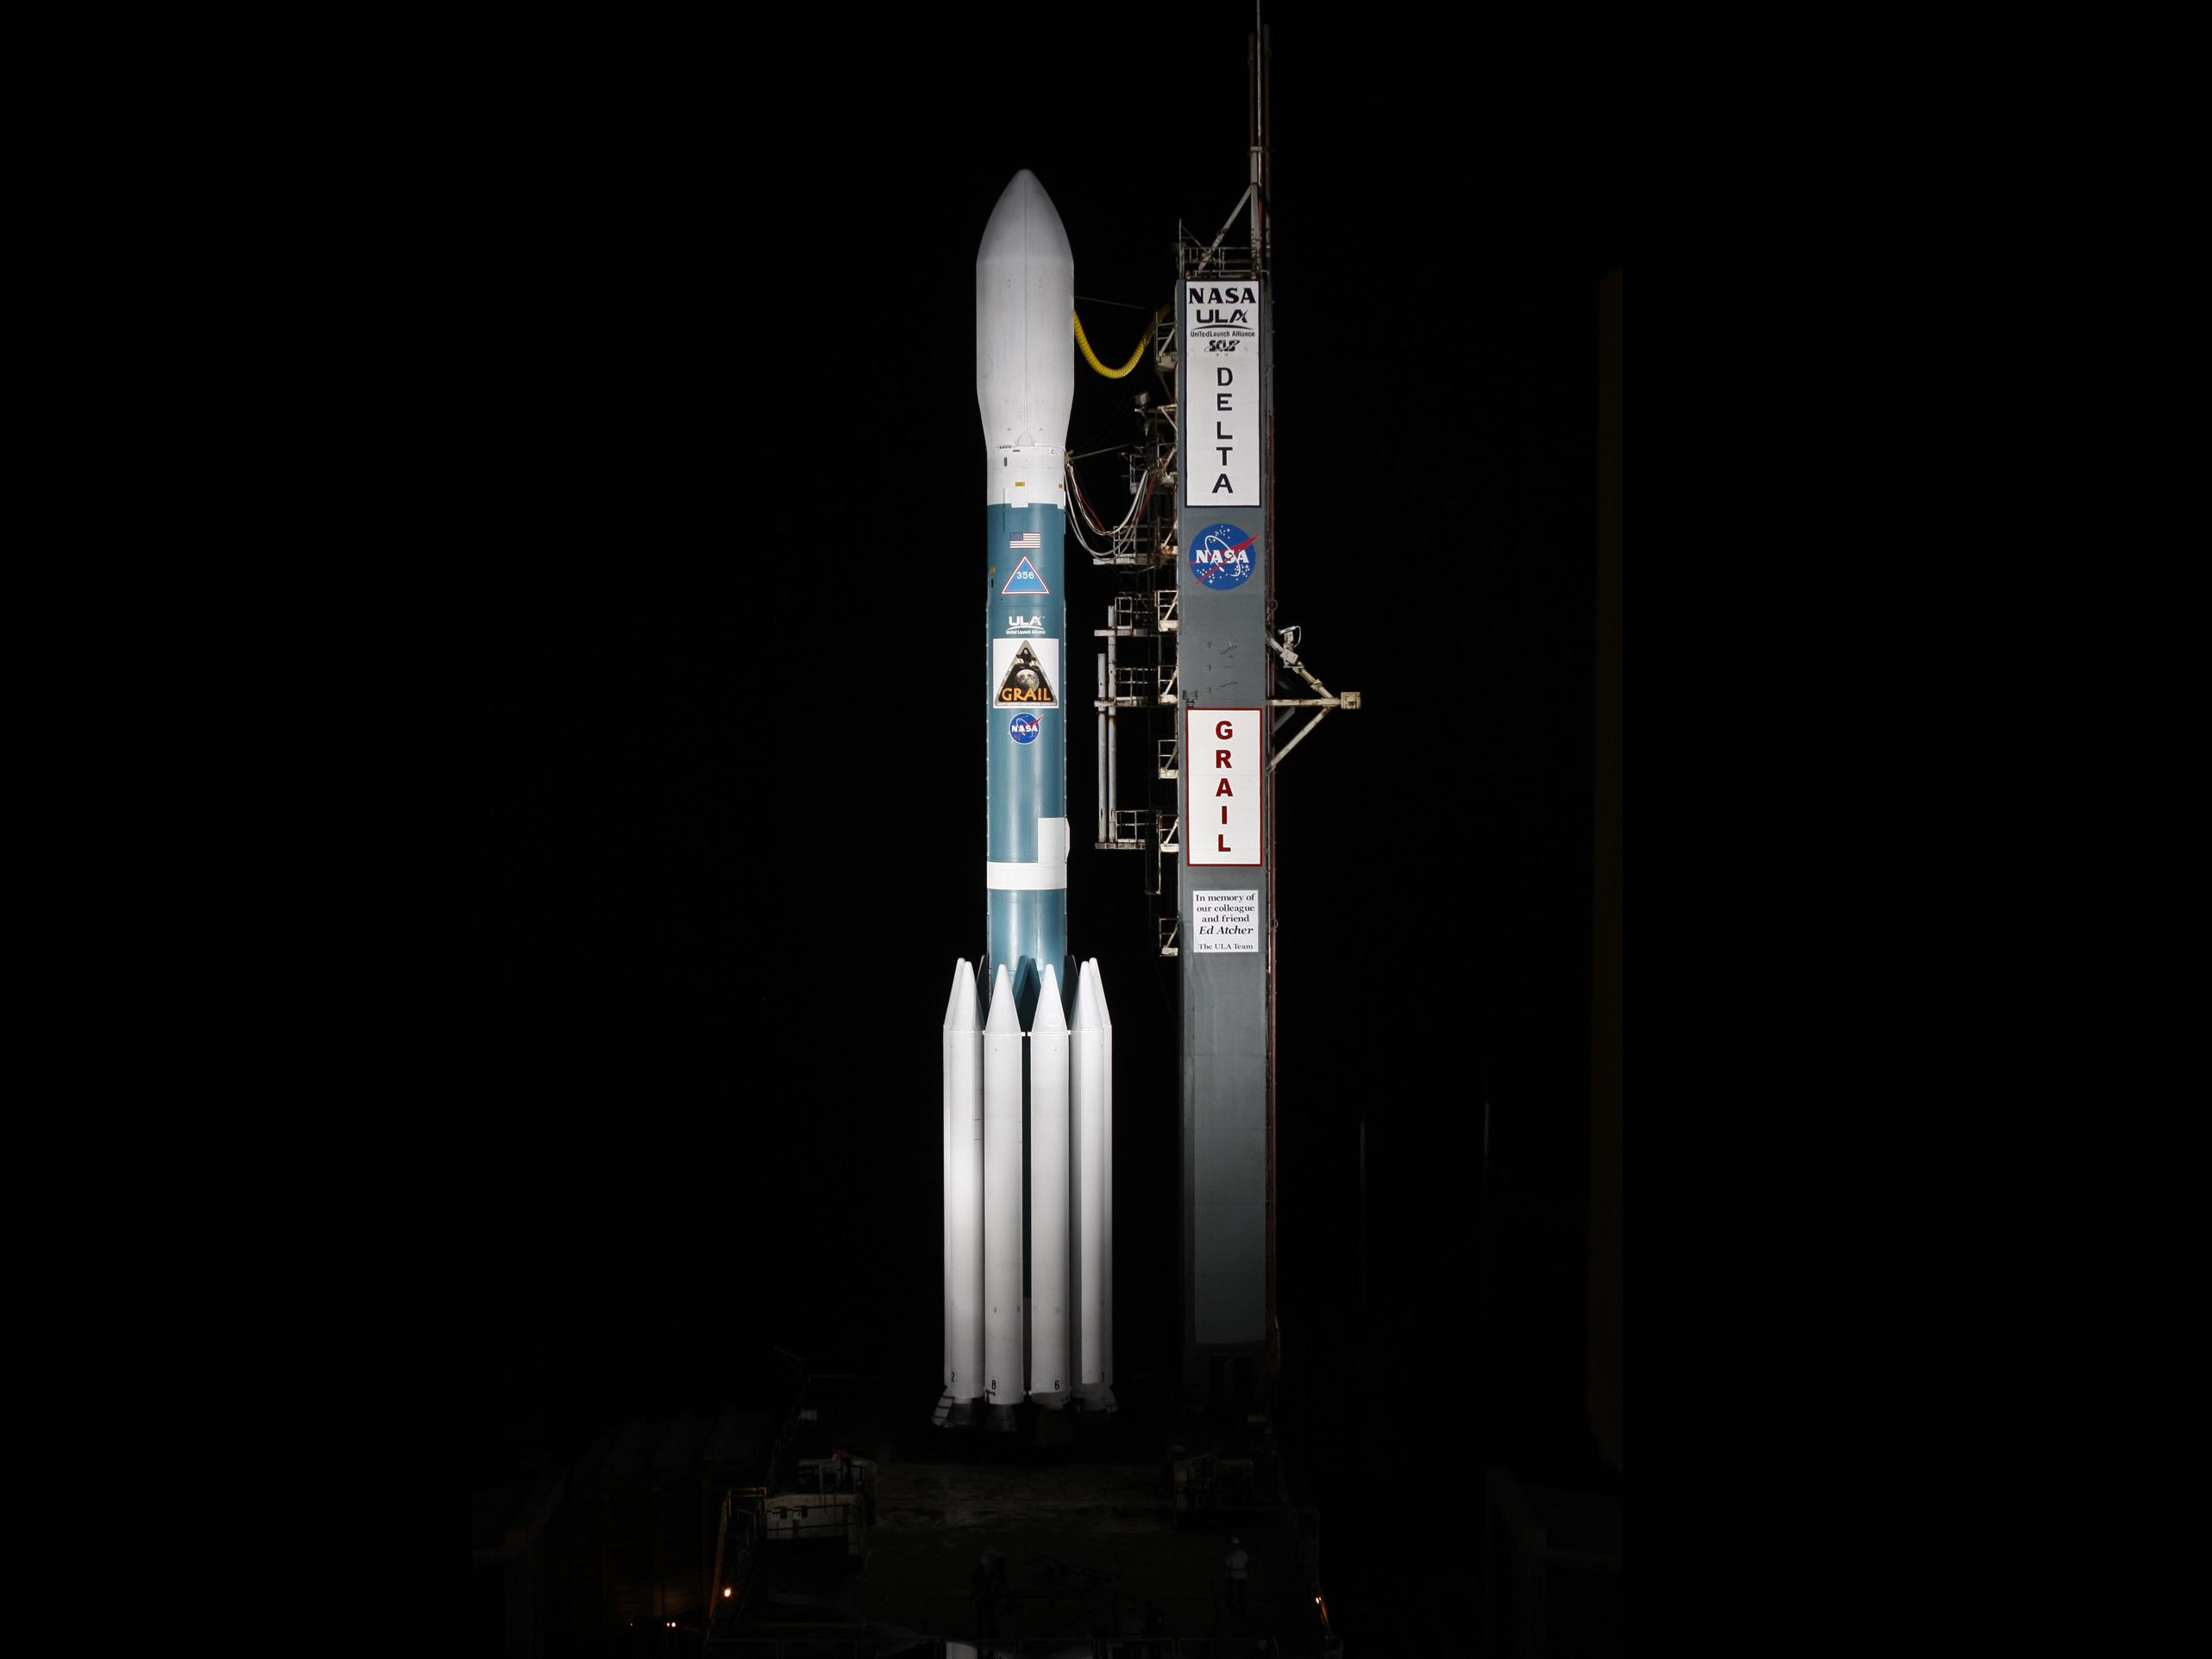 GRAIL on the Pad | NASA: http://www.nasa.gov/mission_pages/grail/multimedia/rollbackBaur.html